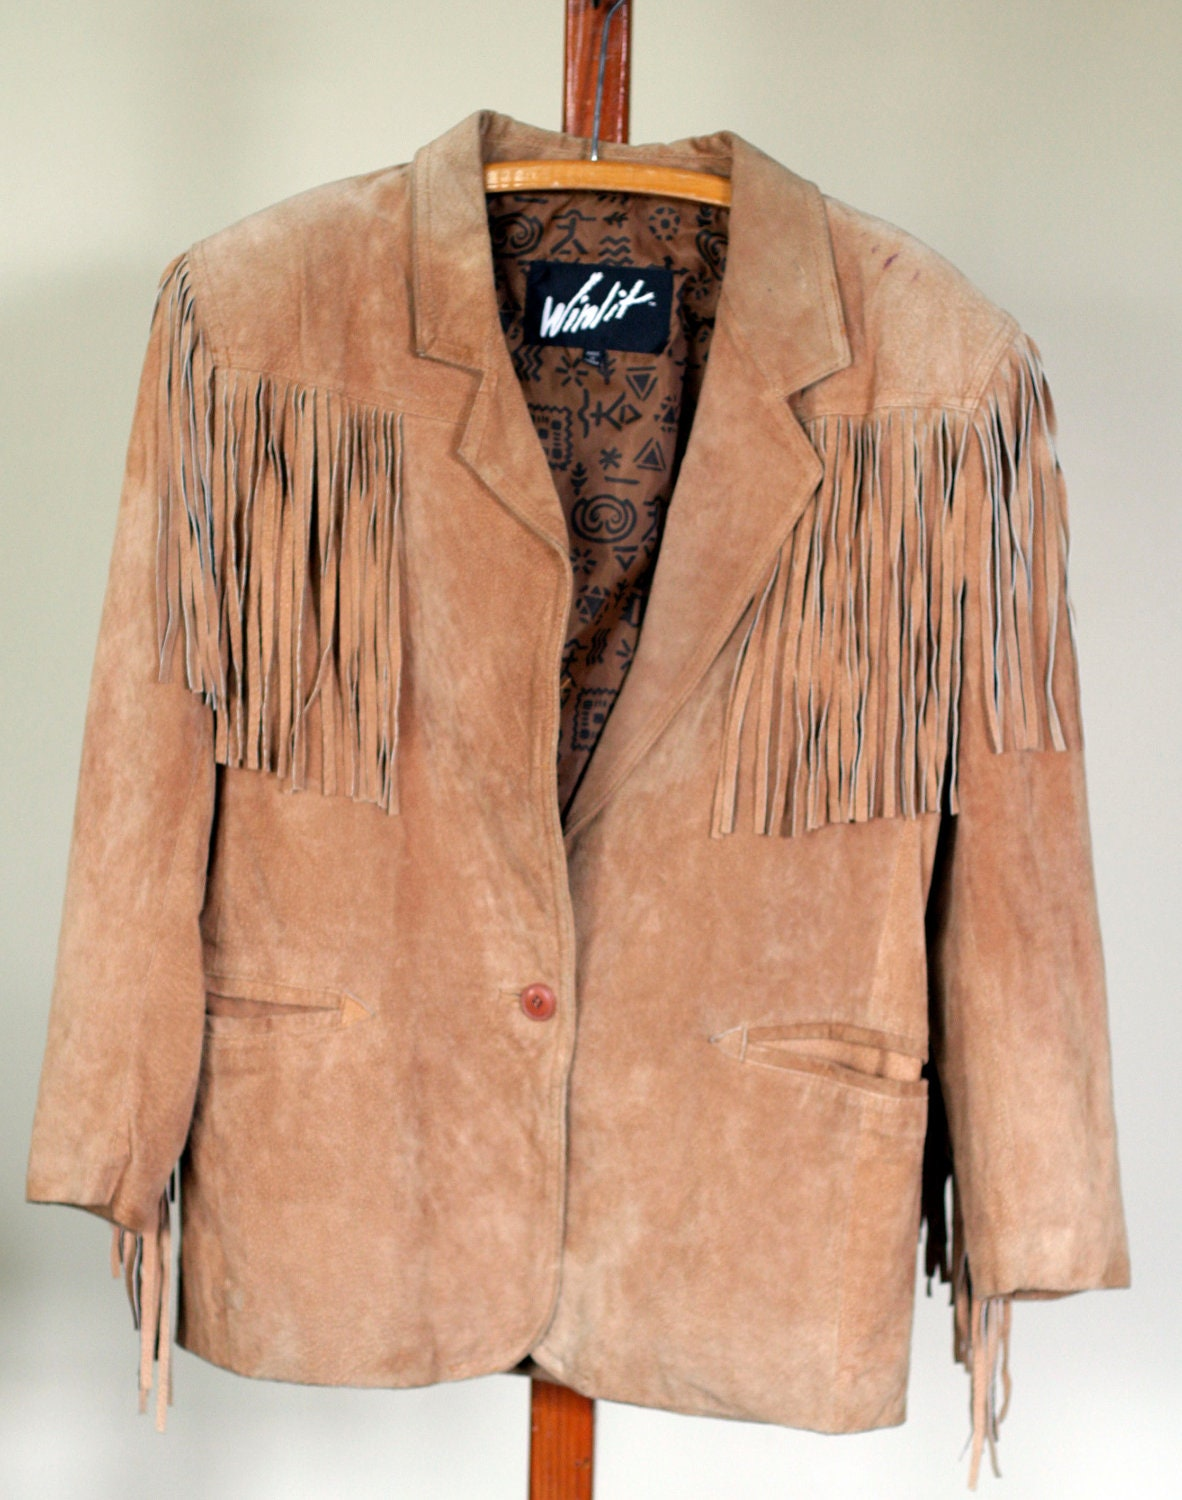 vintage womens suede fringe jacket by winlet by TomTomVintage